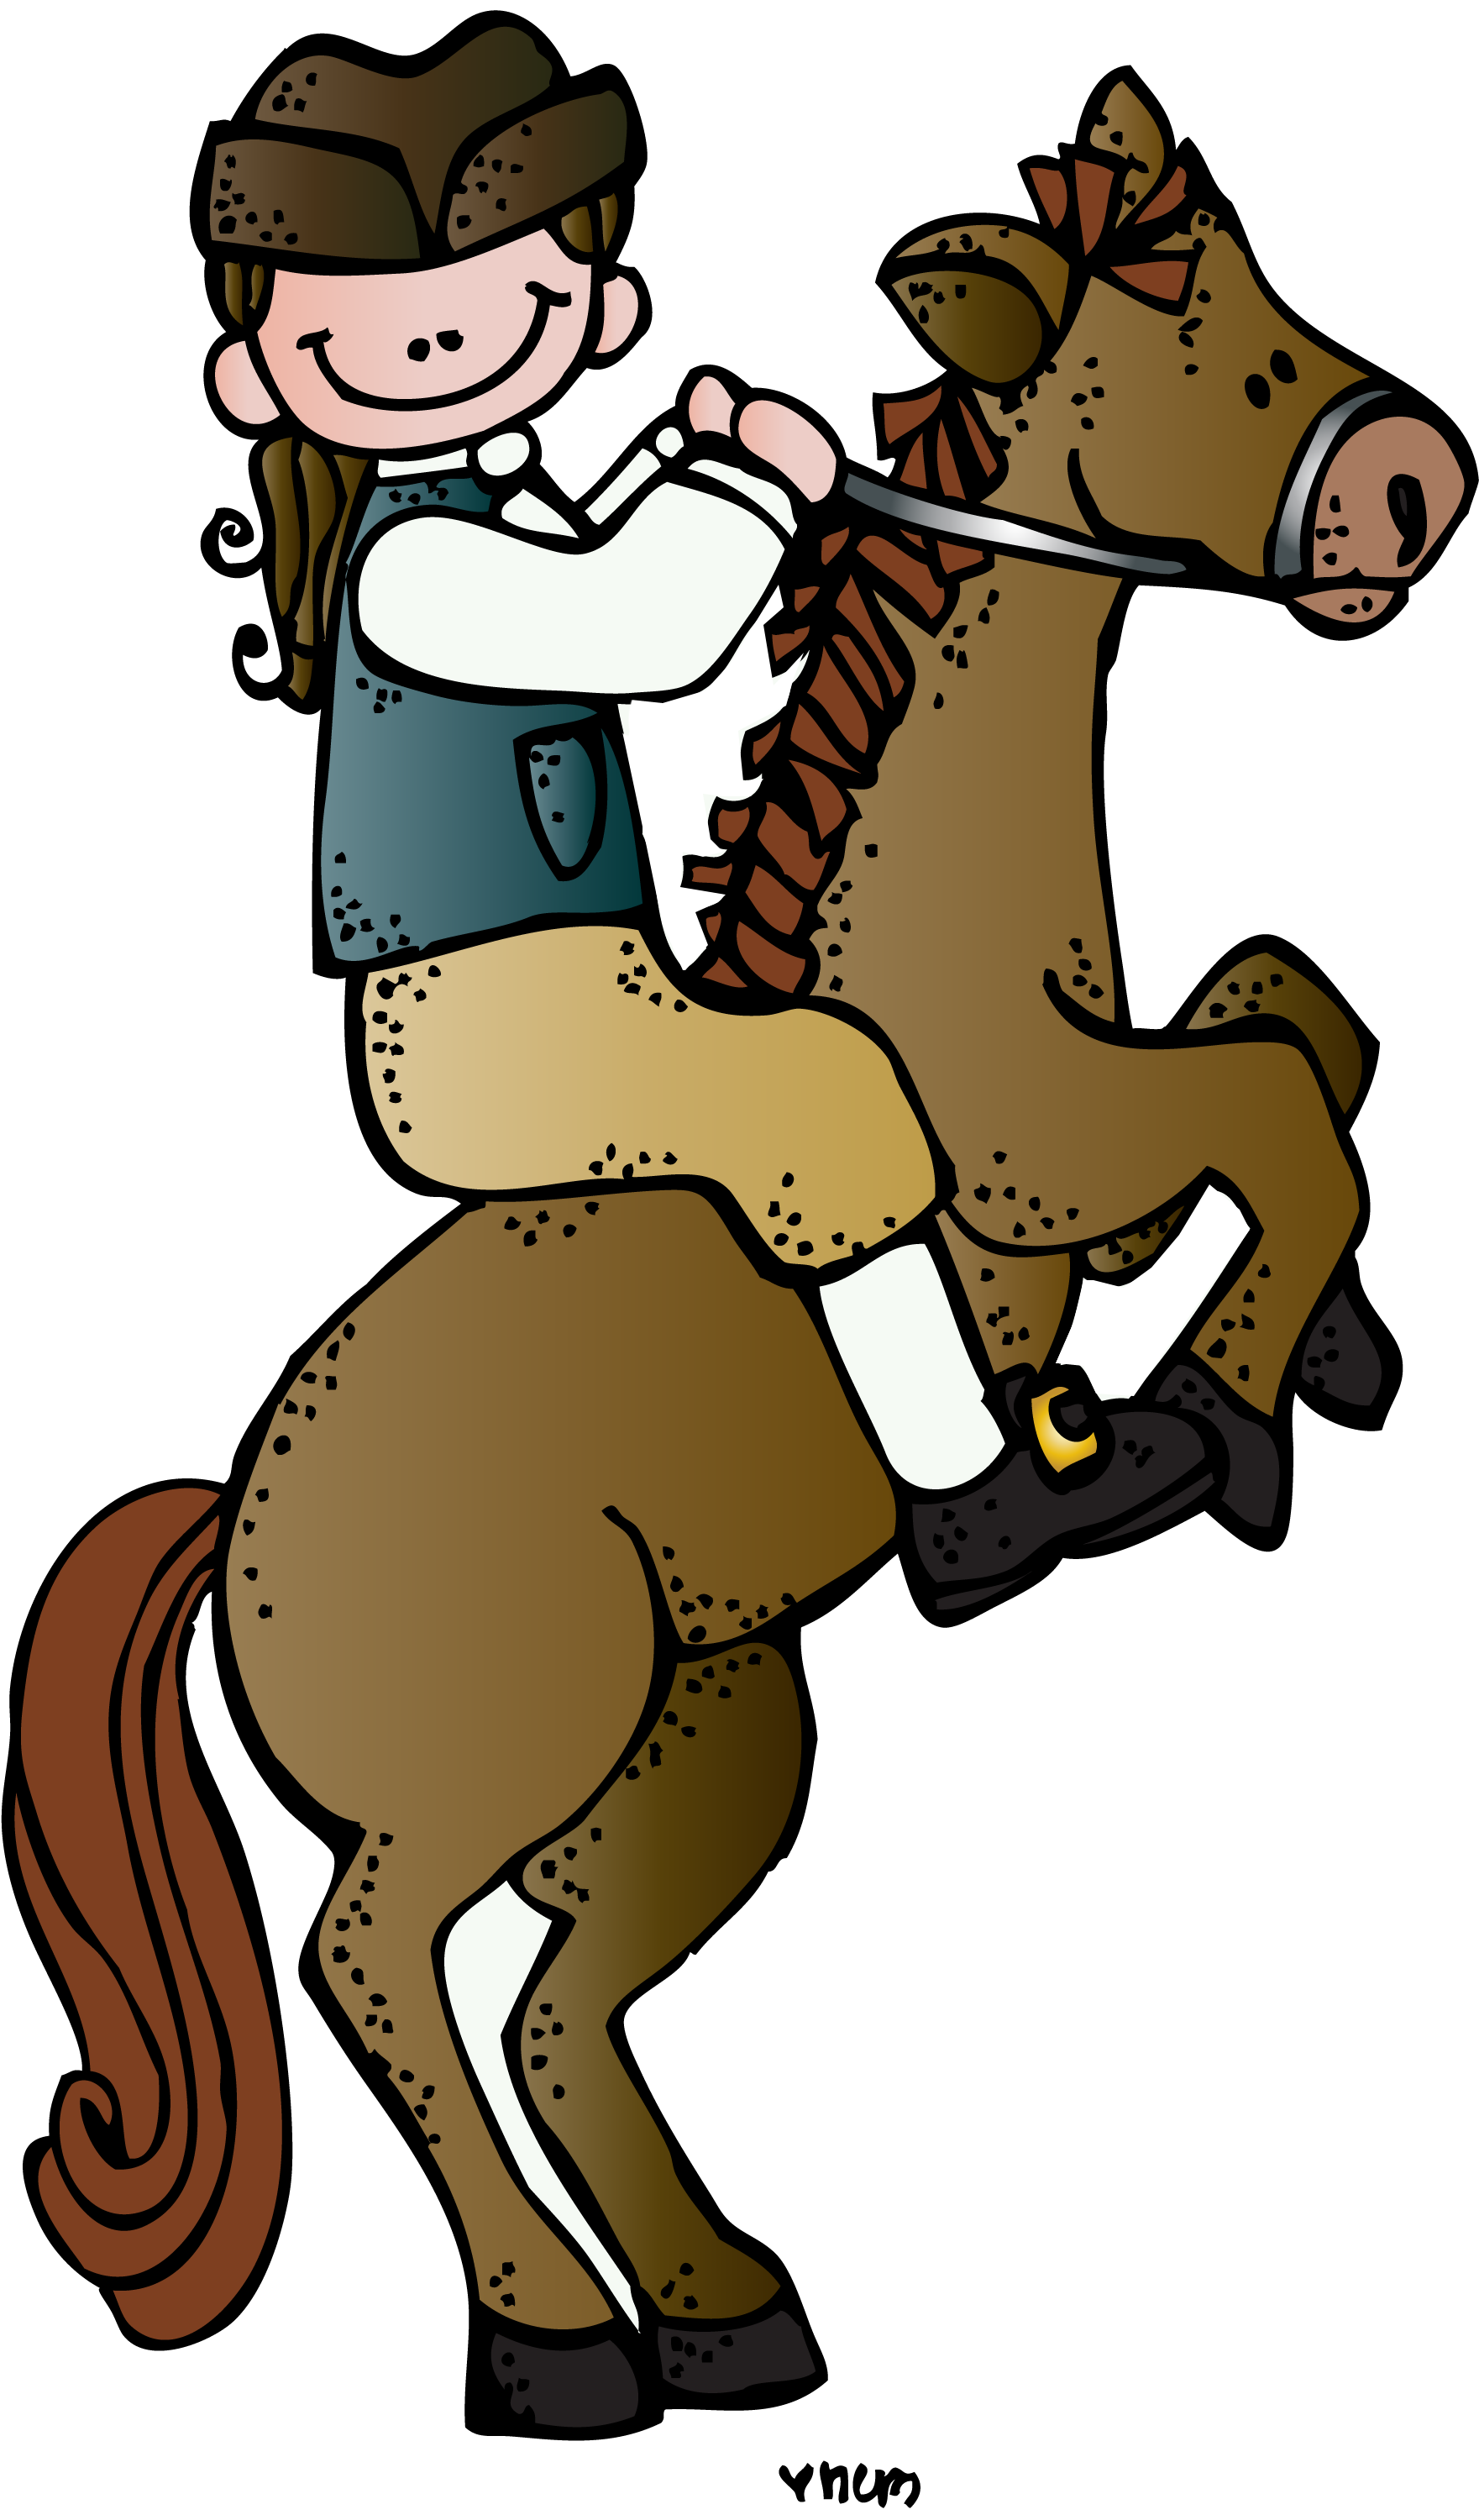 horse pr (c) melonheadz 13 colored.png (1761×3000).